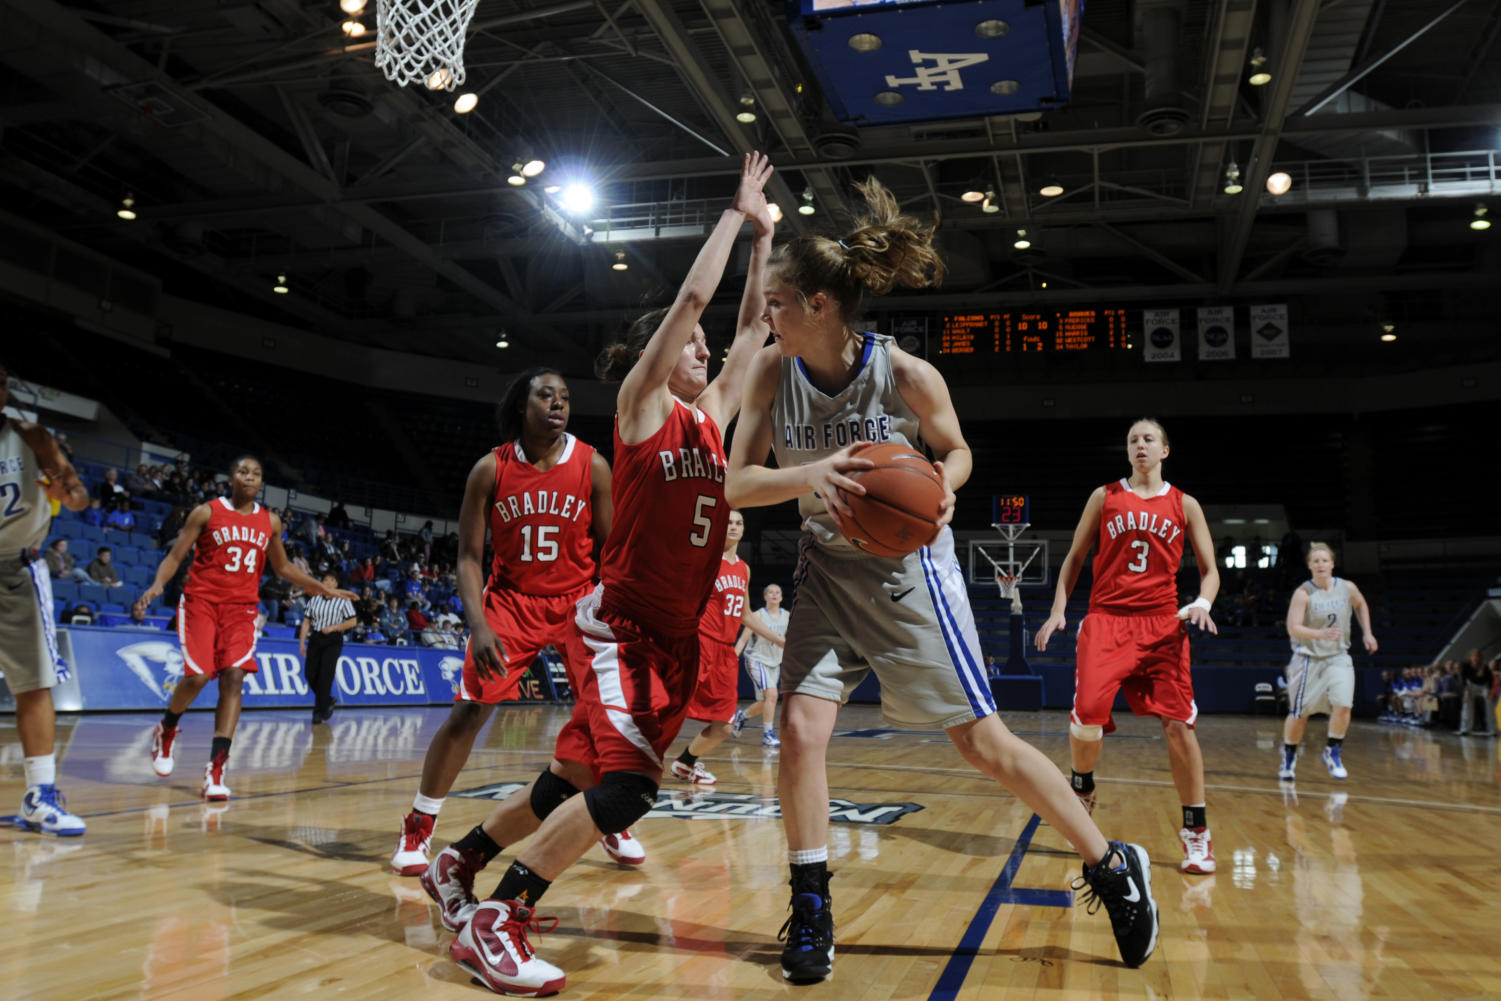 Used under the creative commons law (http://www.af.mil/News/Article-Display/Article/118195/womens-basketball-bradley-defeats-air-force-62-45/)  Falcons freshman forward Katie Hilbig pushes toward the basket as the Braves' Hanna Muegge defends during the Air Force-Bradley game at the Air Force Academy's Clune Arena Dec. 19, 2009. Hilbig, a native of Castle Rock, Colo., had two rebounds in the Falcons' 62-45 loss. (U.S. Air Force photo/J. Rachel Spencer)